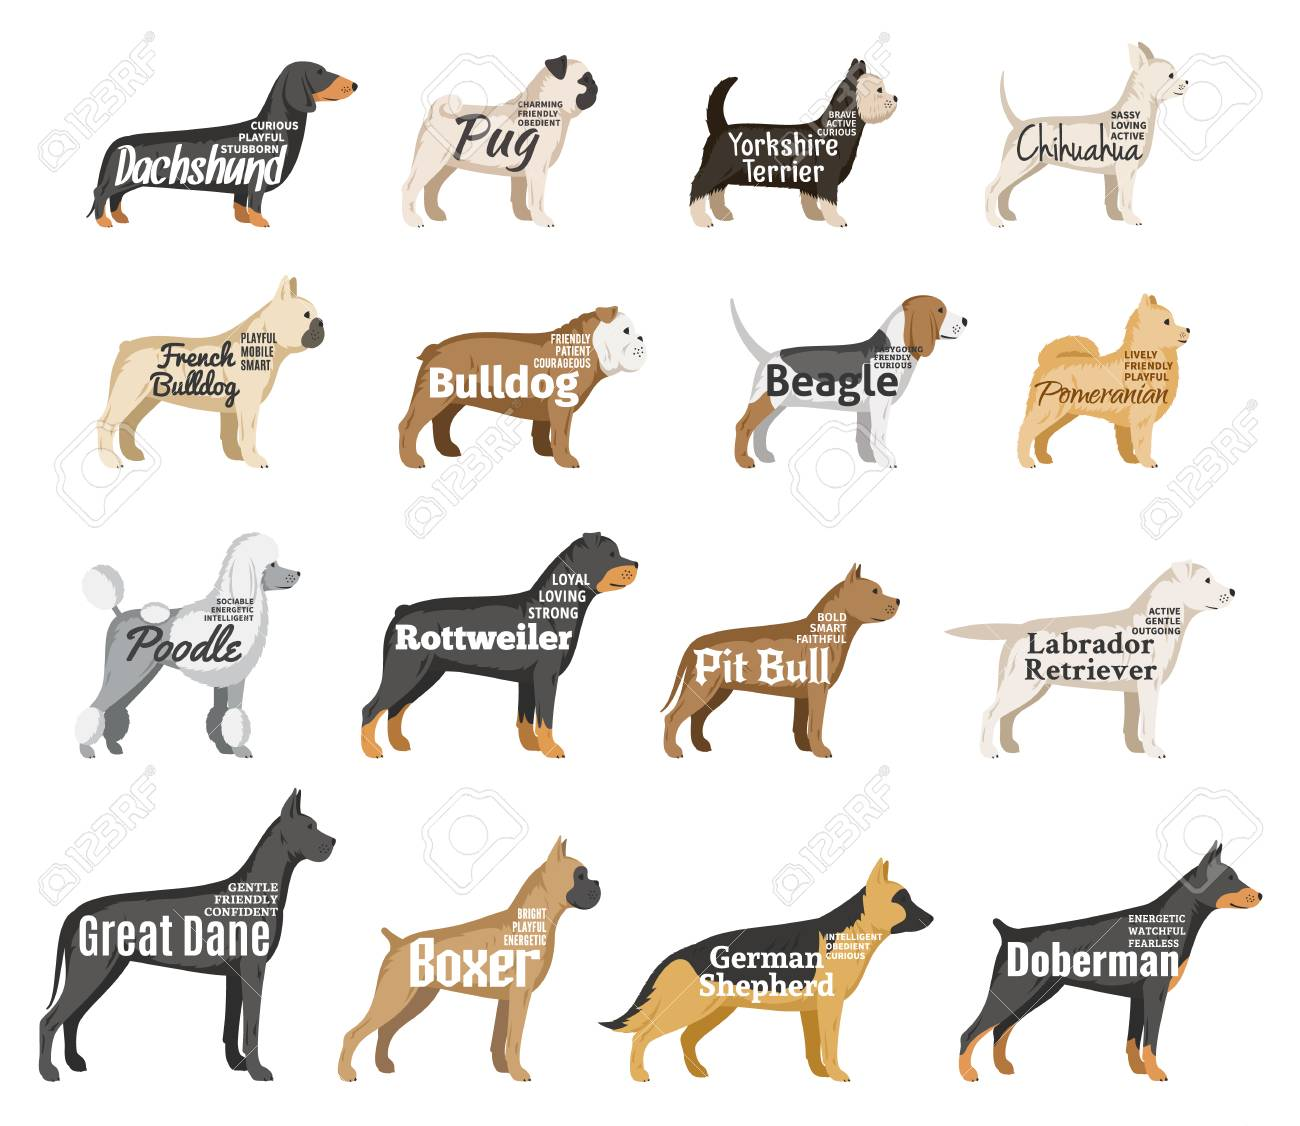 Vector Dog Breeds Illustration With Names And Personality